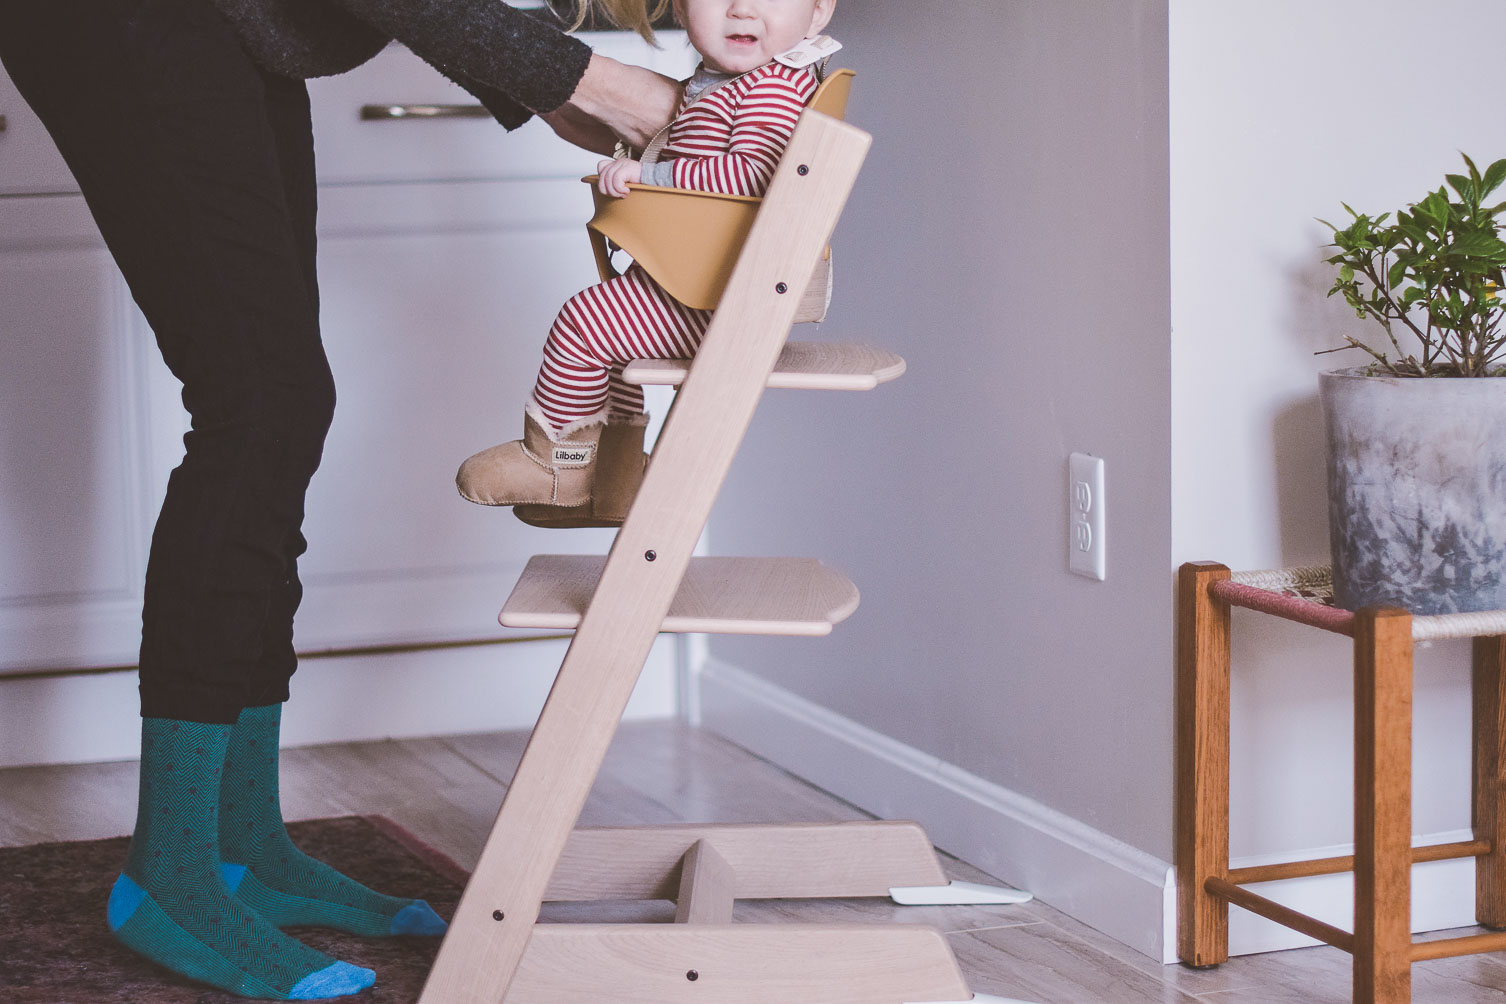 sharing our Stokke Tripp Trapp review as a modern chic high chair that grows with the baby